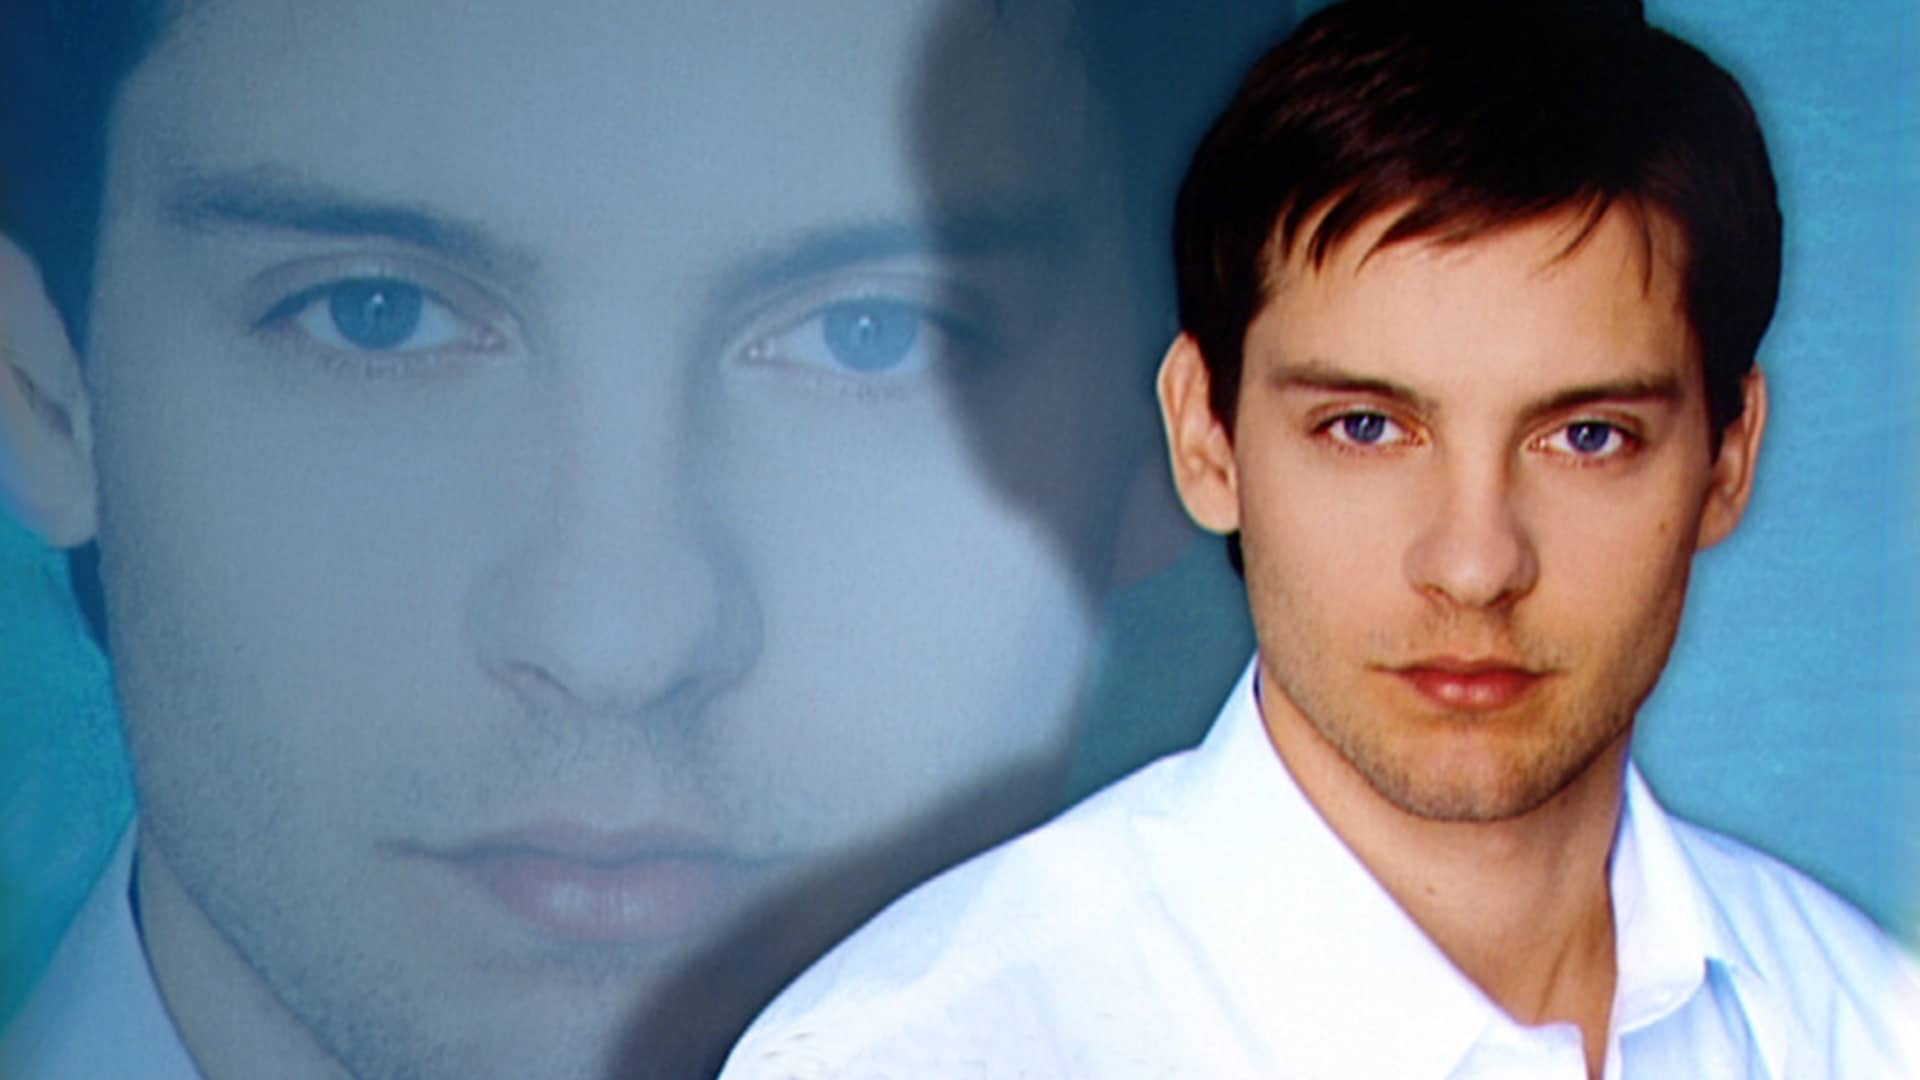 Tobey Maguire: April 15, 2000